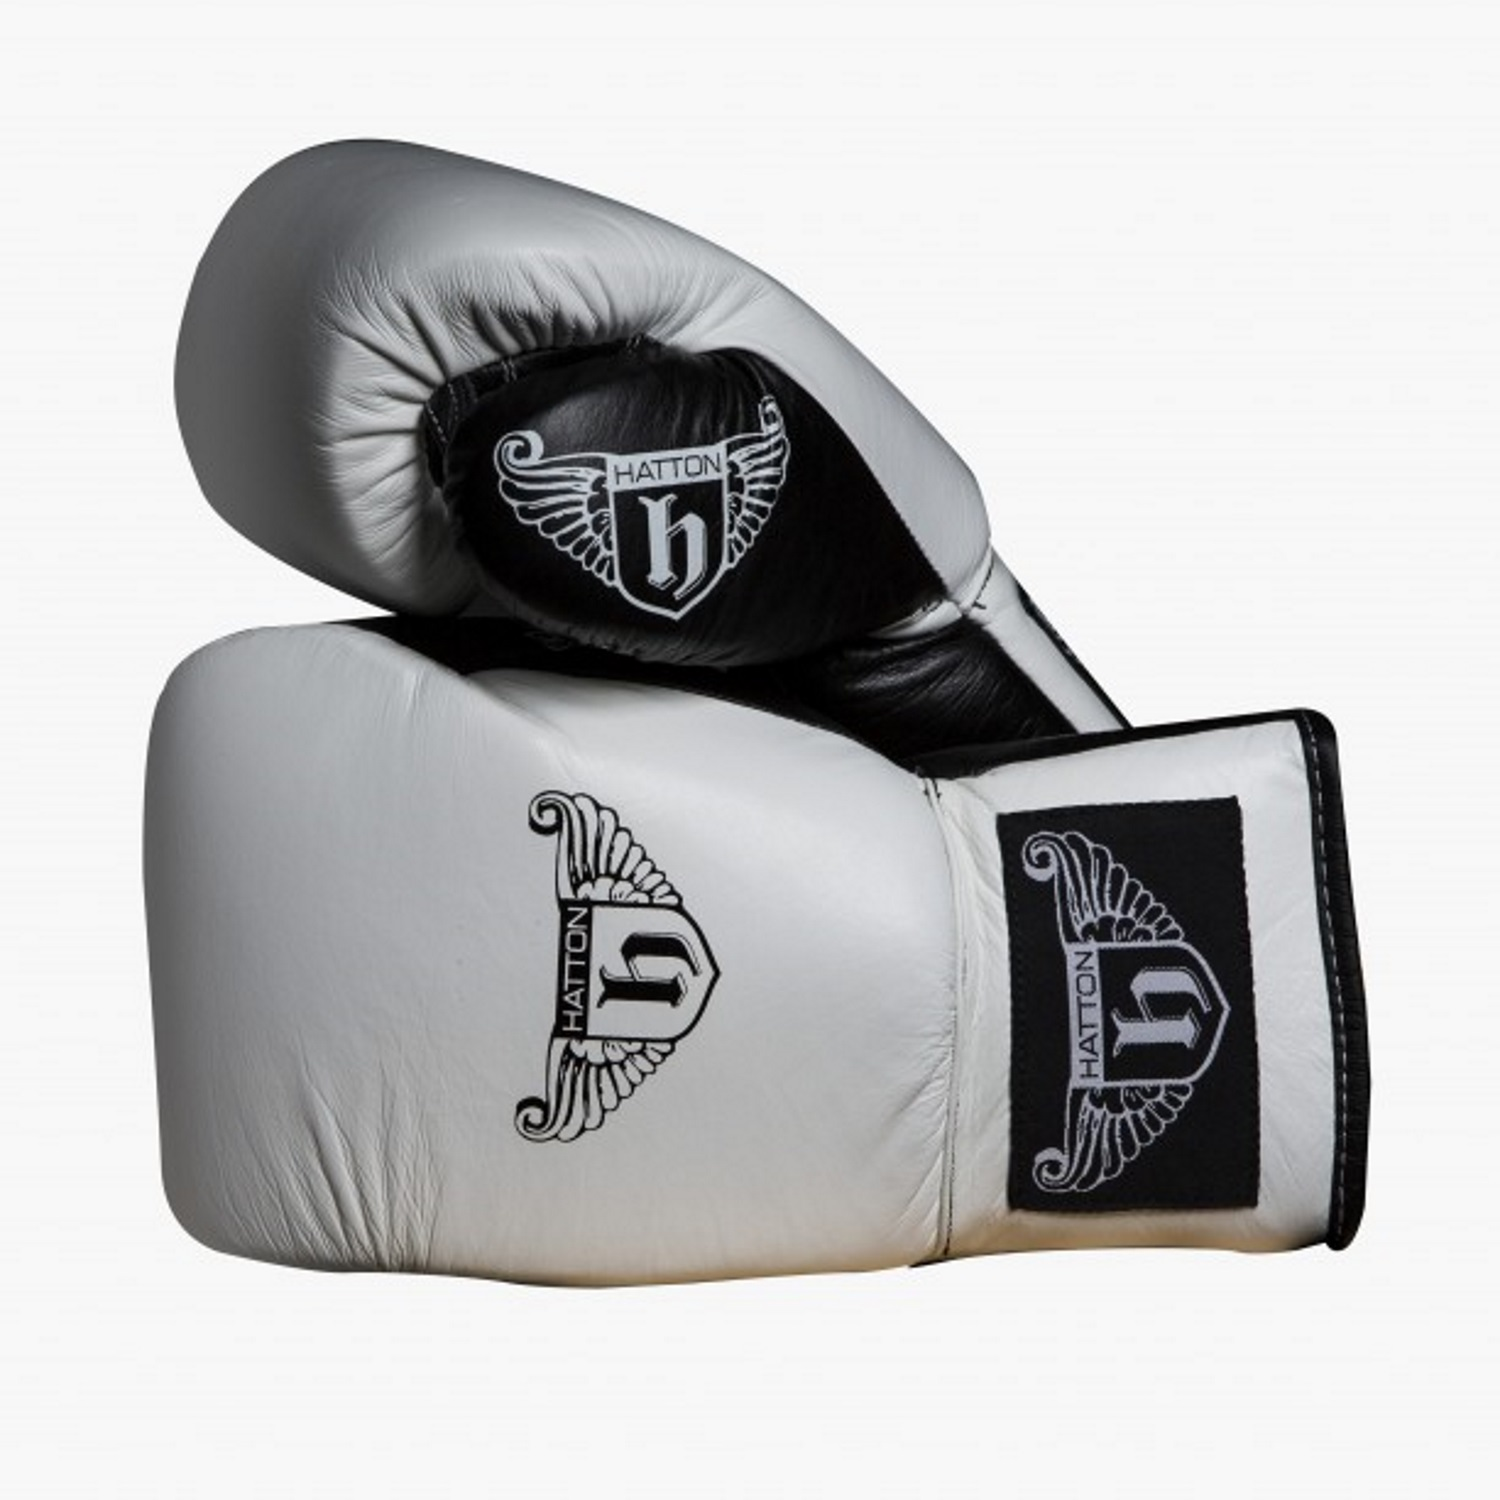 Hatton Pro Sparring Leather Lace Up Gloves (Pair)